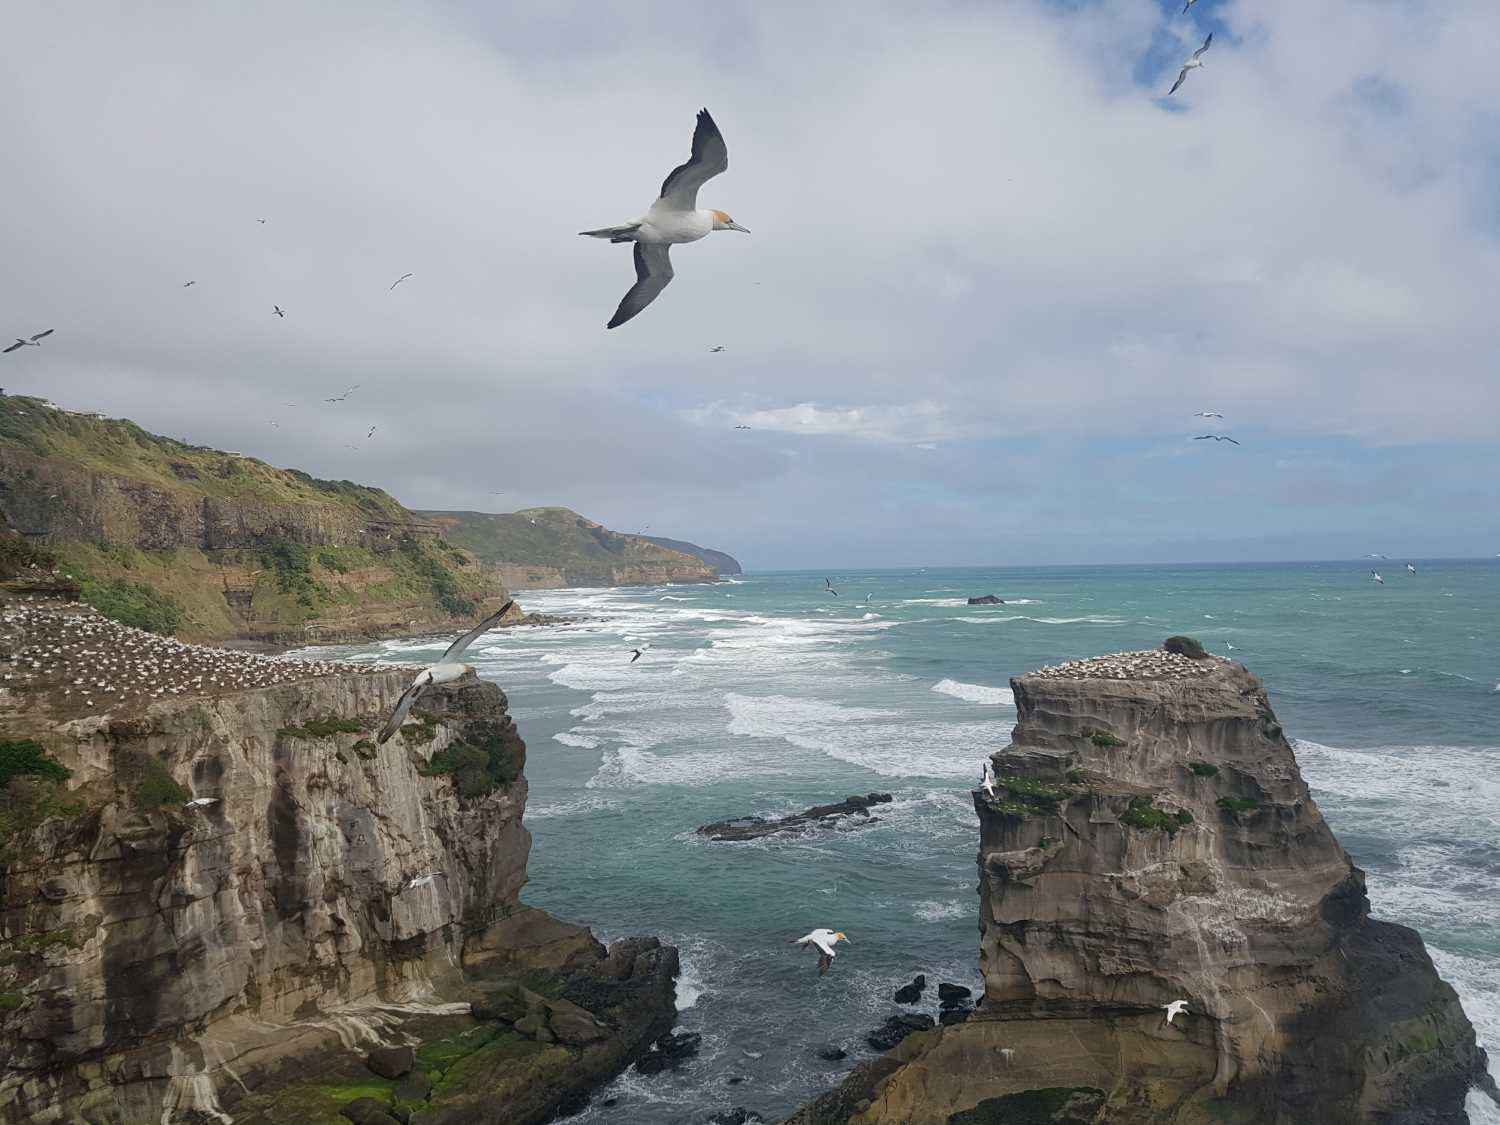 The gannet colonies of Muriwai Beach